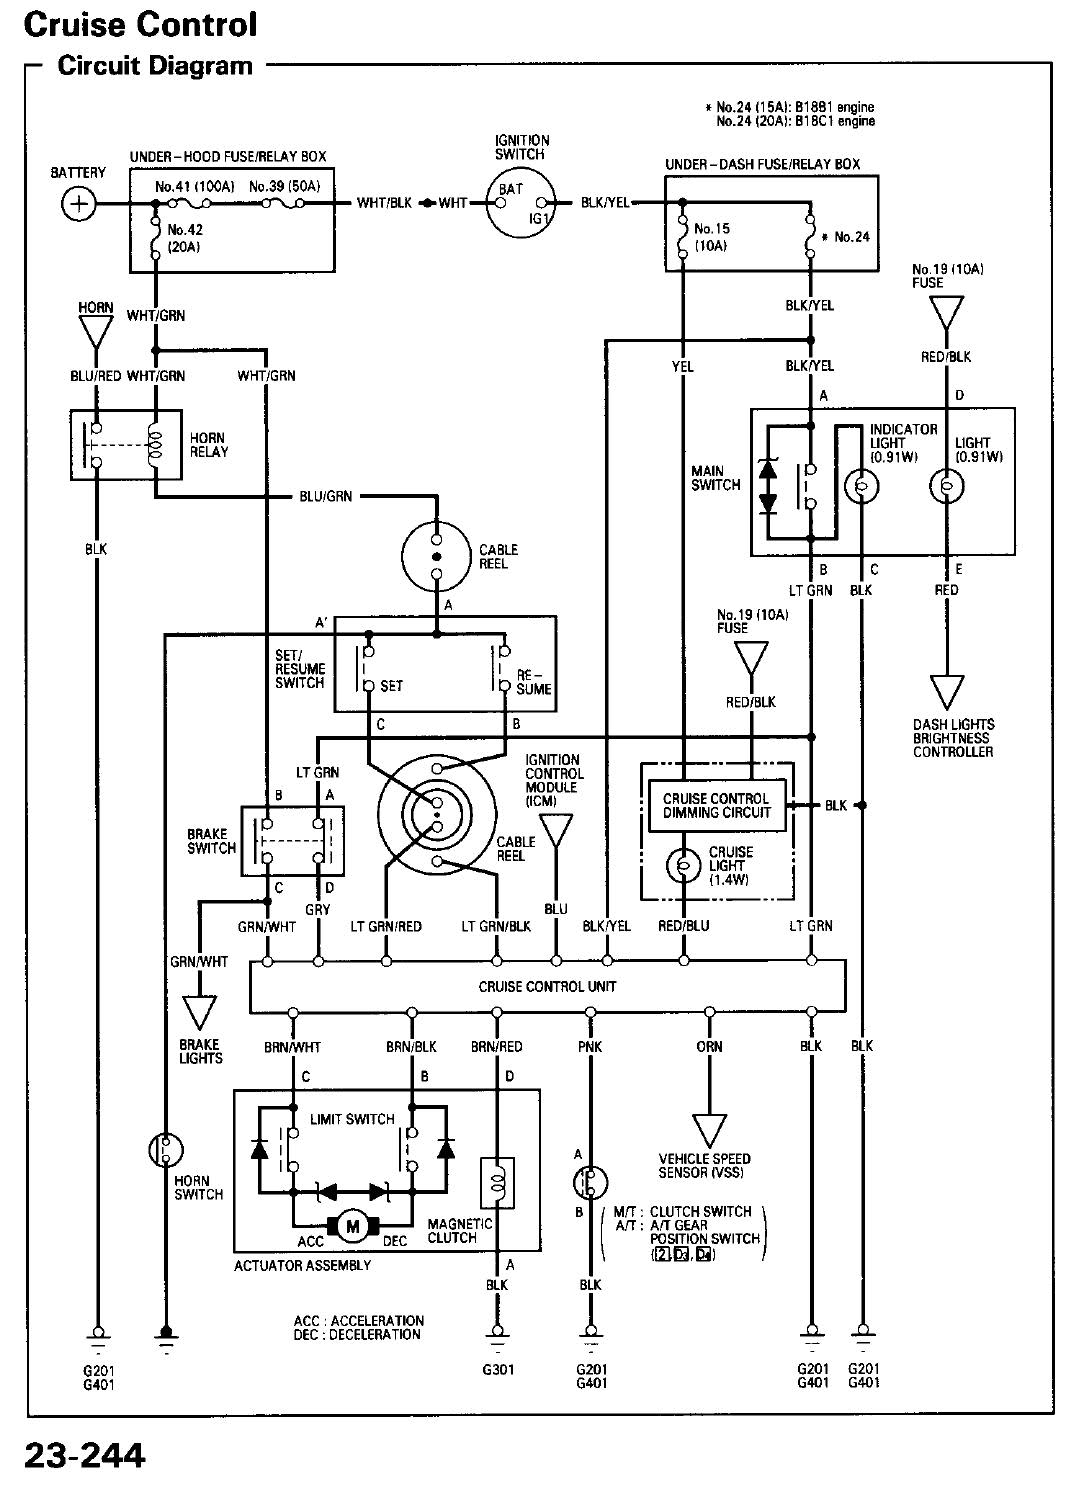 Electronic Circuits Page 502 Next